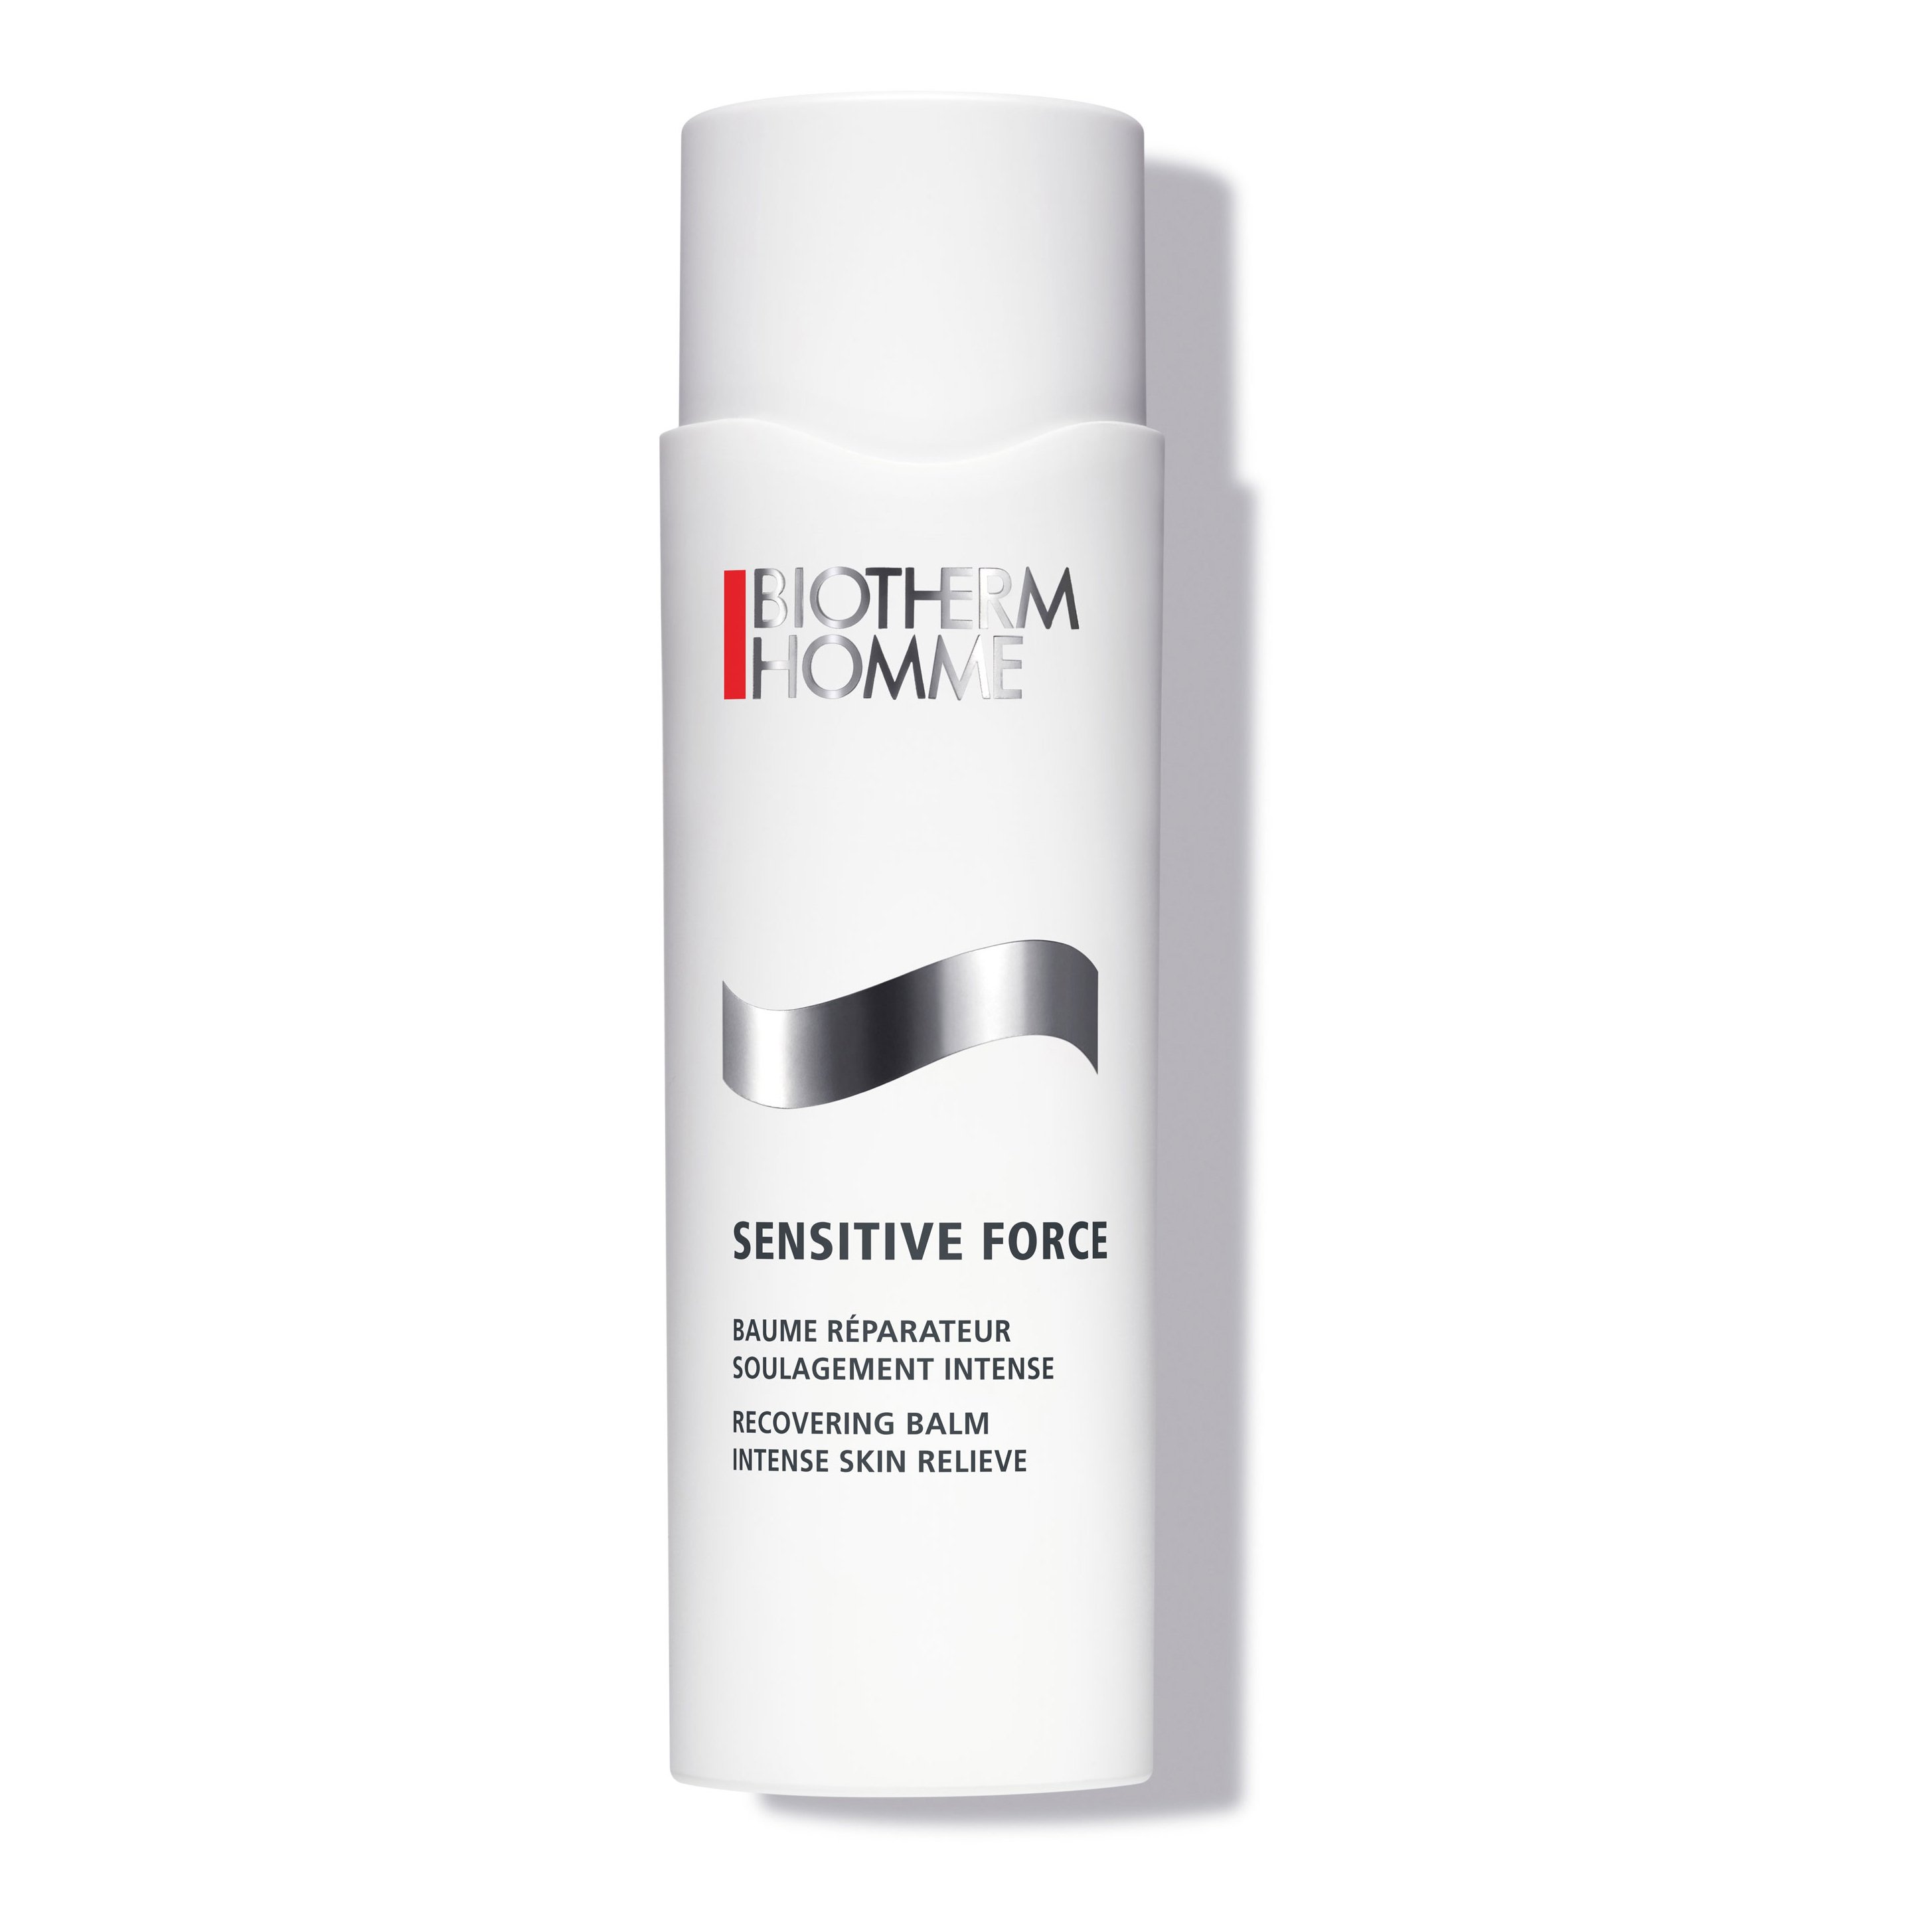 Sensitive Force. BIOTHERM HOMME Recovering Balm 50ml